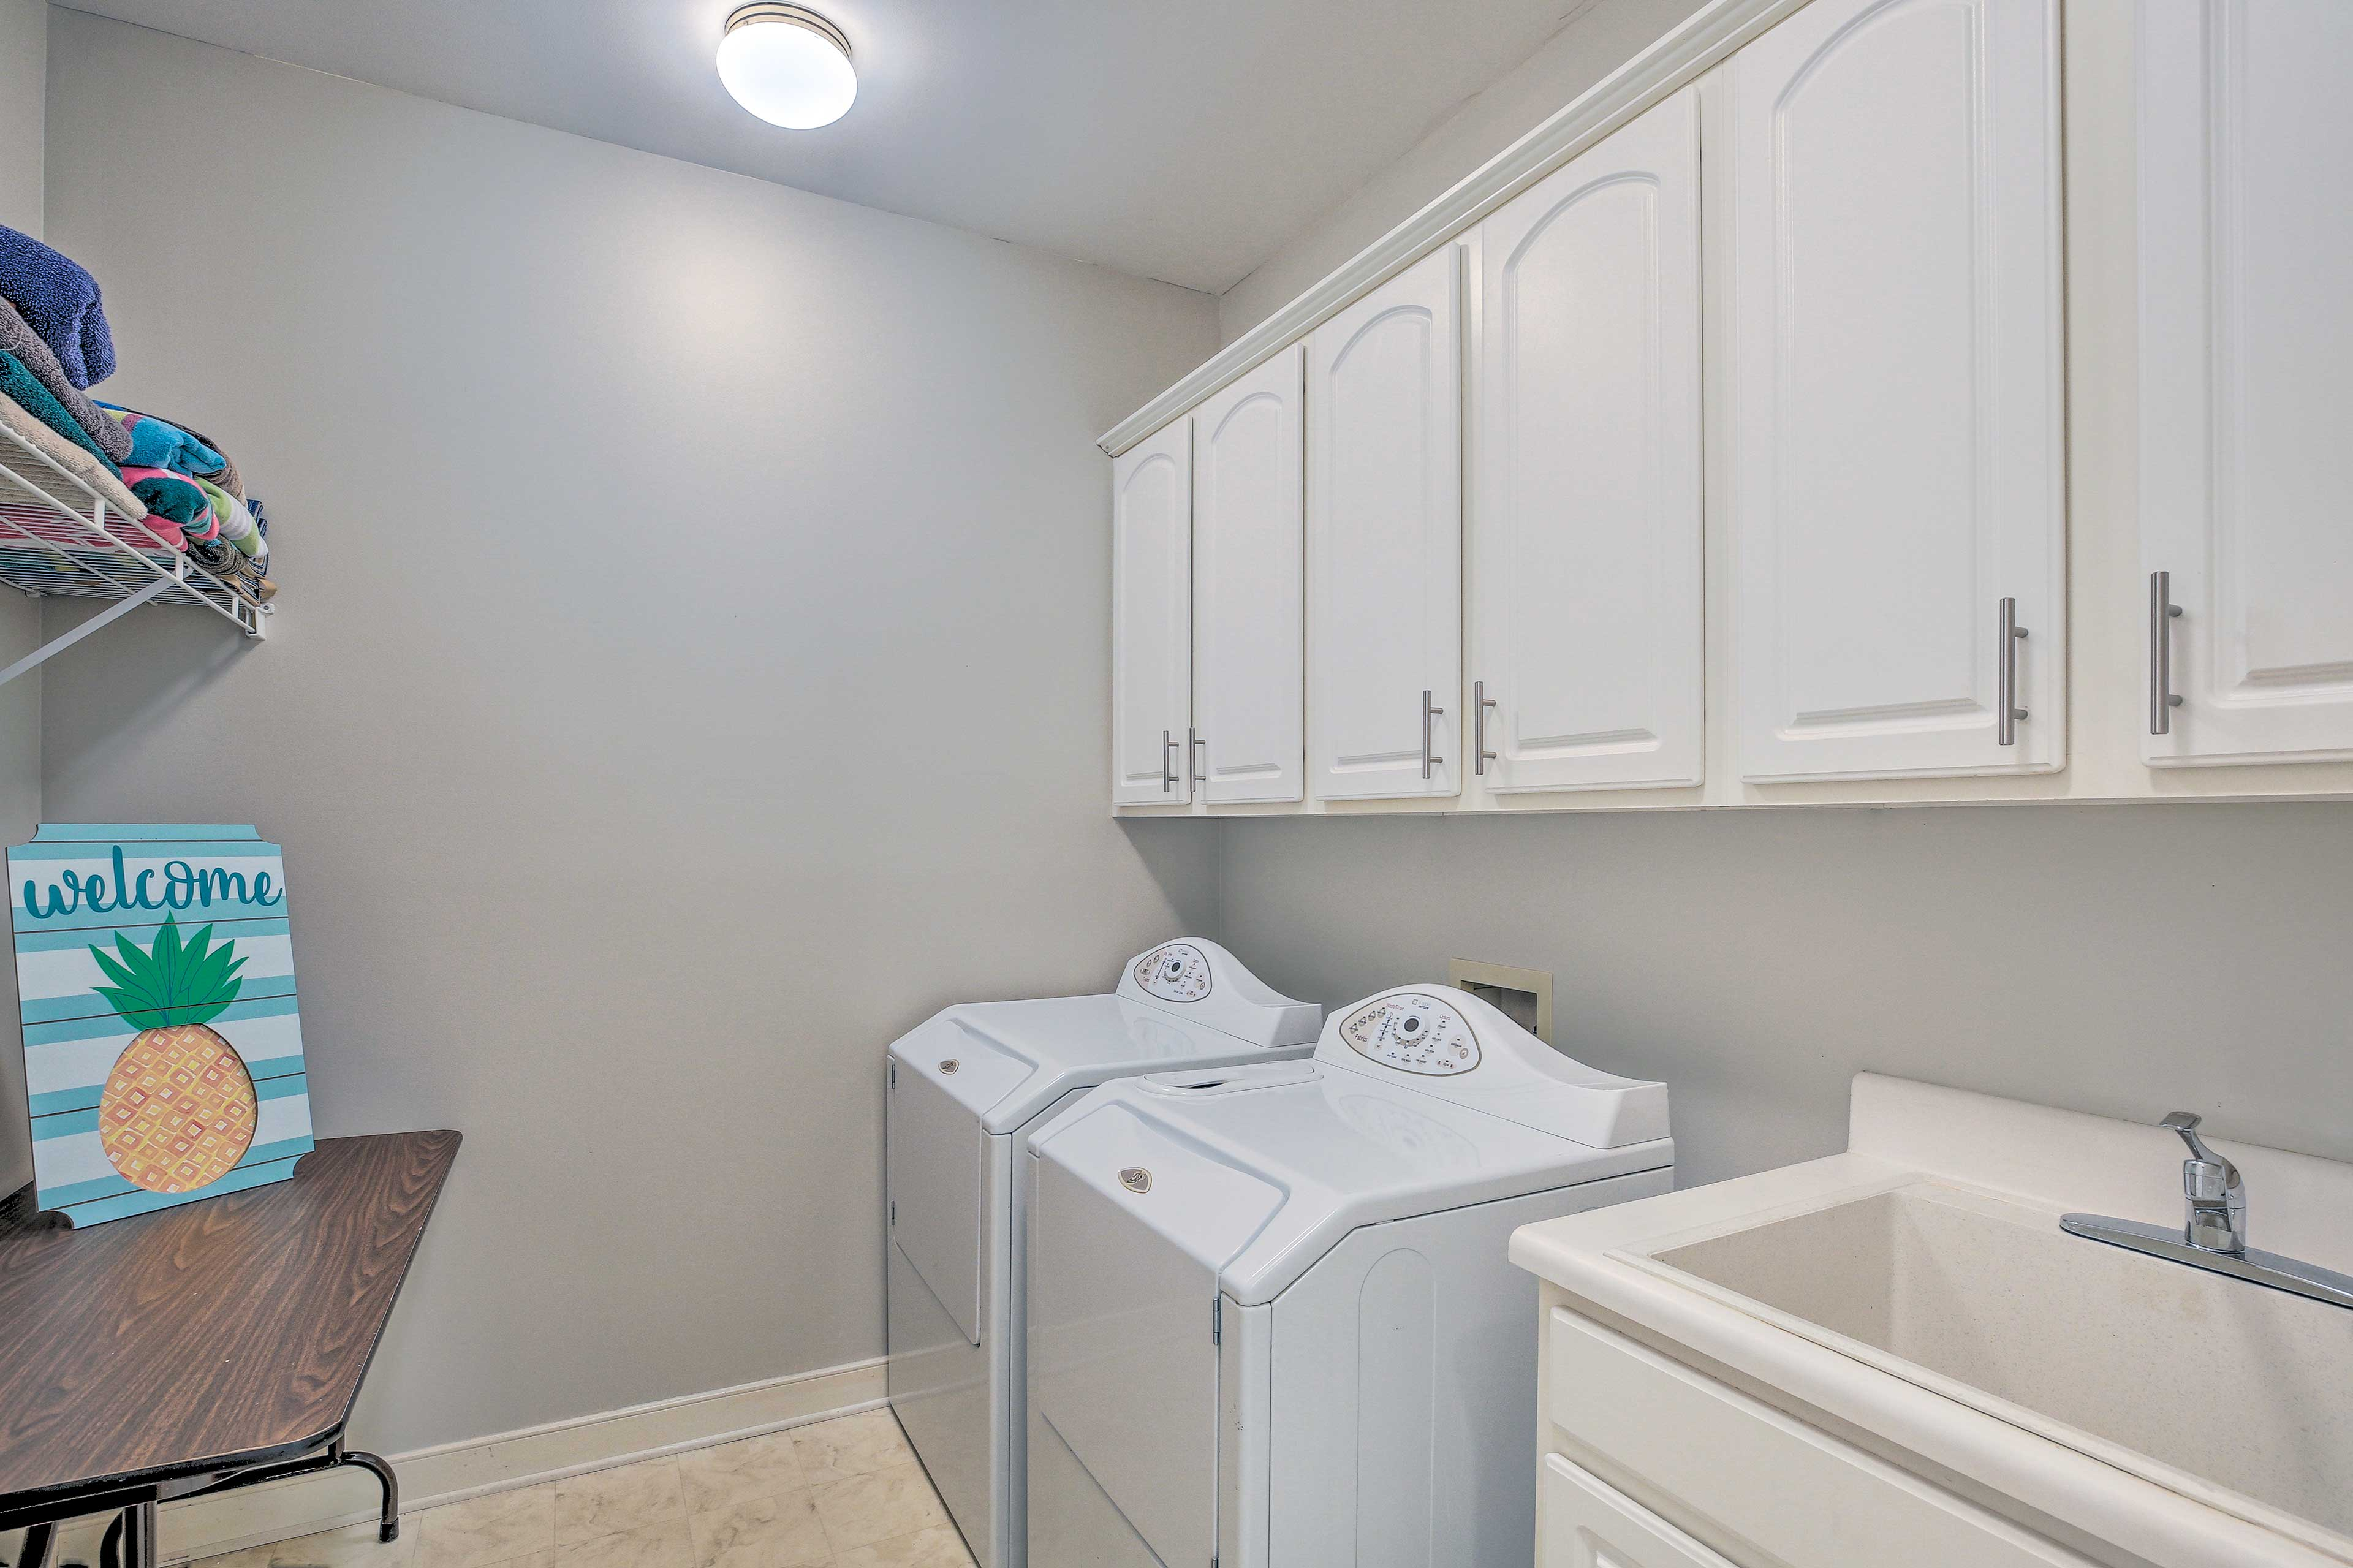 Keep your beach towels fresh and dry with the laundry machines.